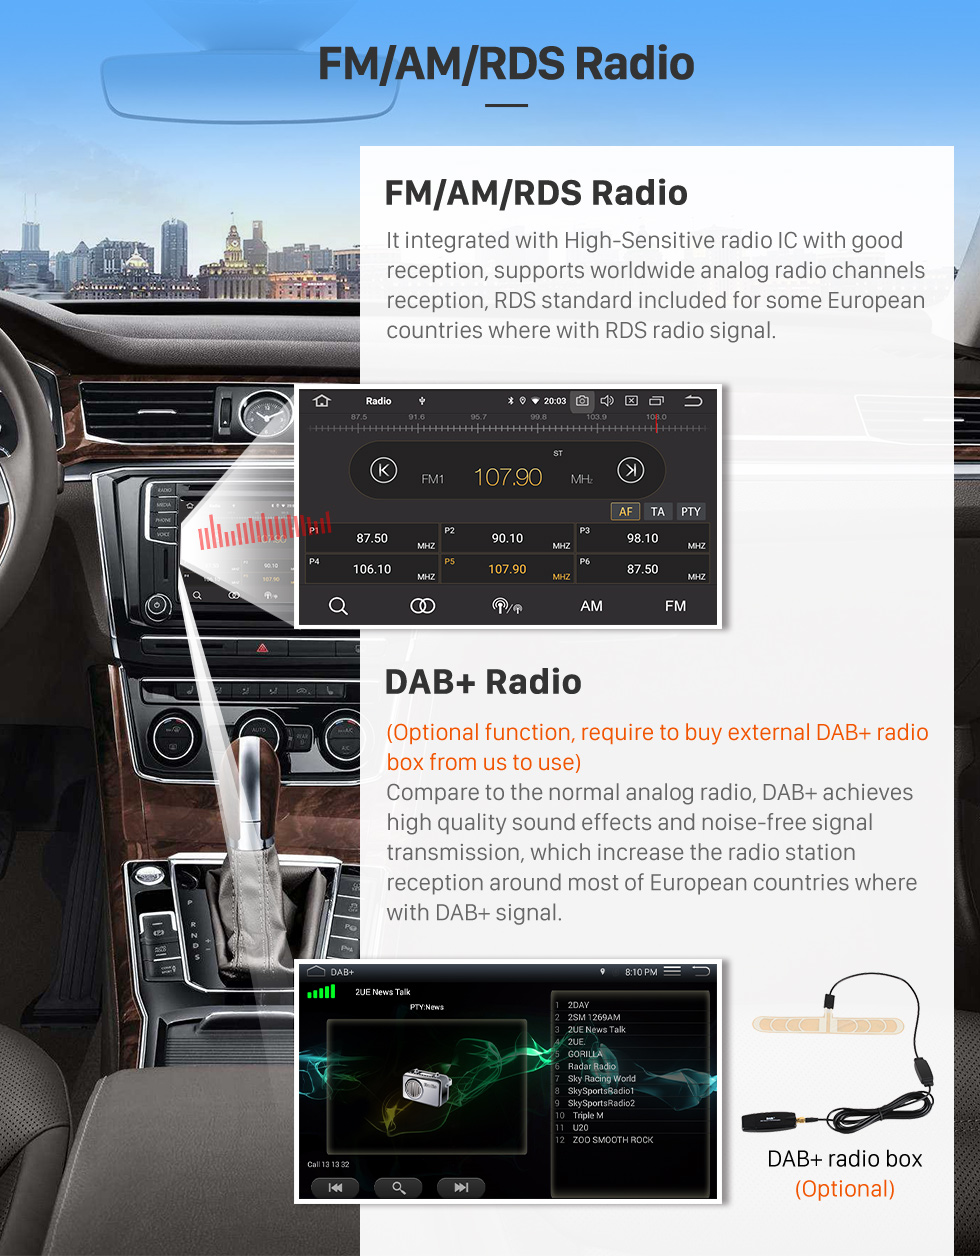 Seicane 9 inch Android 9.0 HD Touchscreen Radio for 2010 2011 Peugeot 308 408 with GPS Navi USB WIFI Bluetooth music AUX support RDS DVD Player 4G TPMS OBD